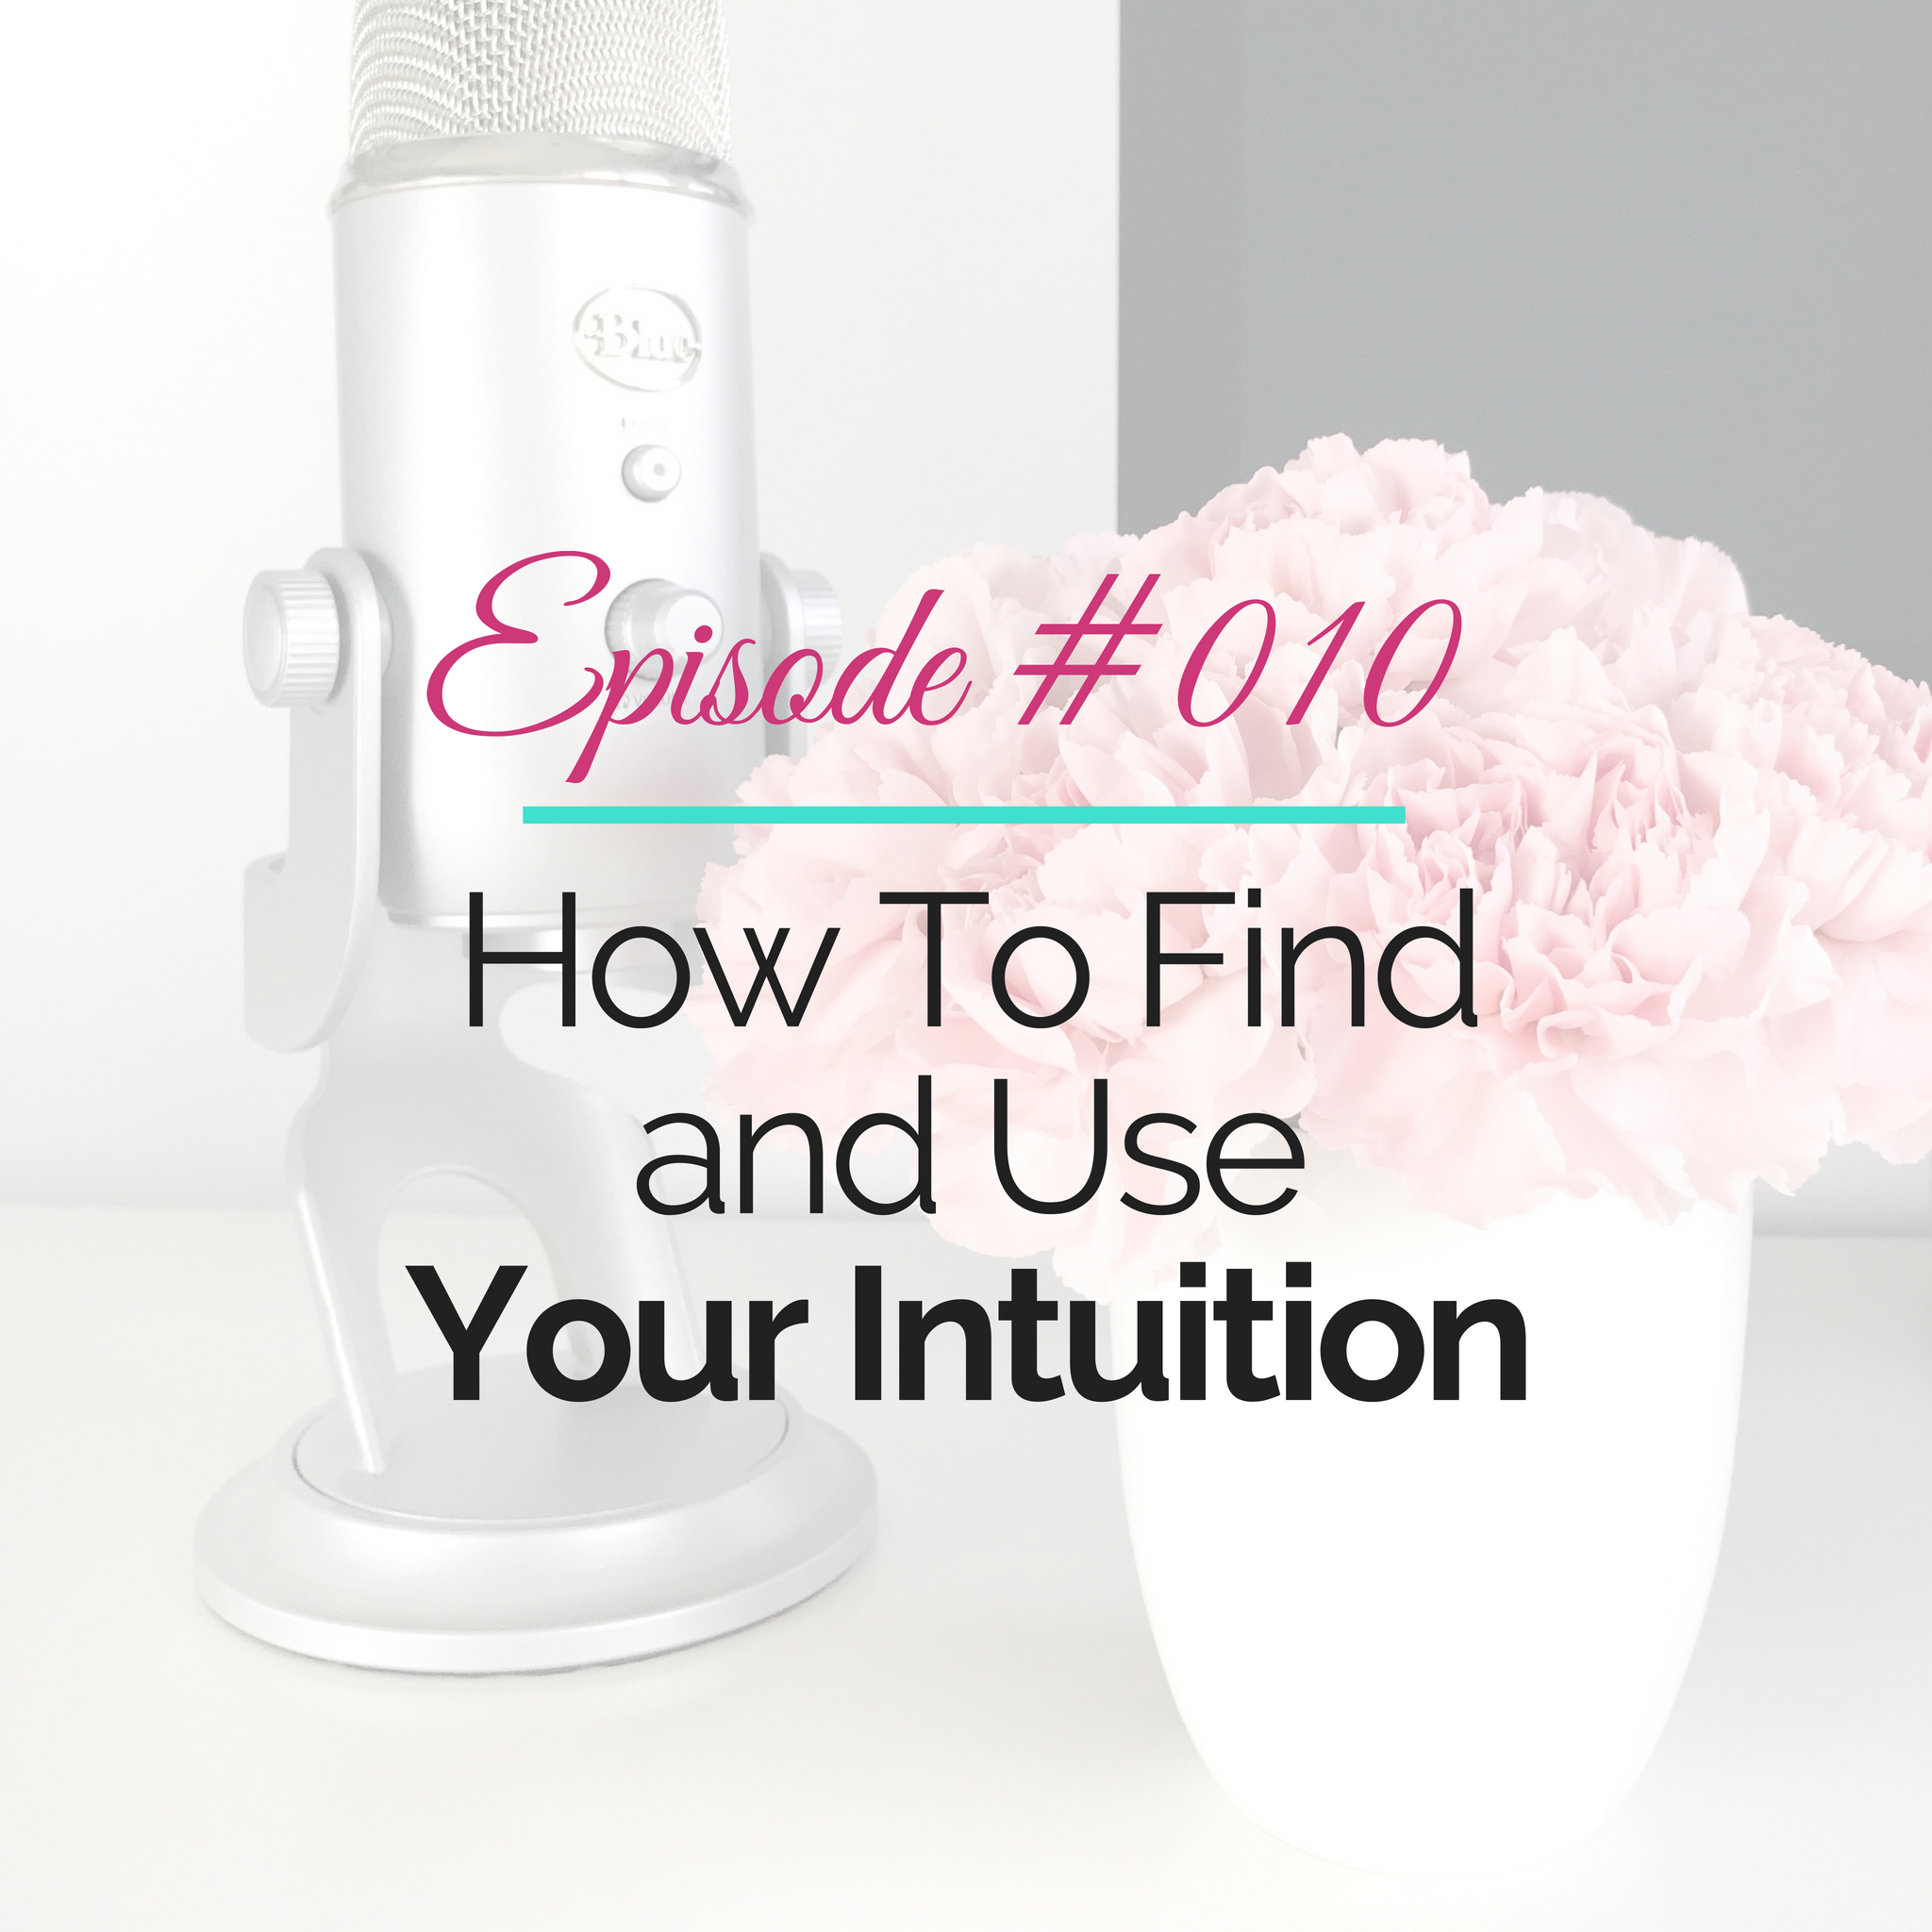 How To Find and Use Your Intuition